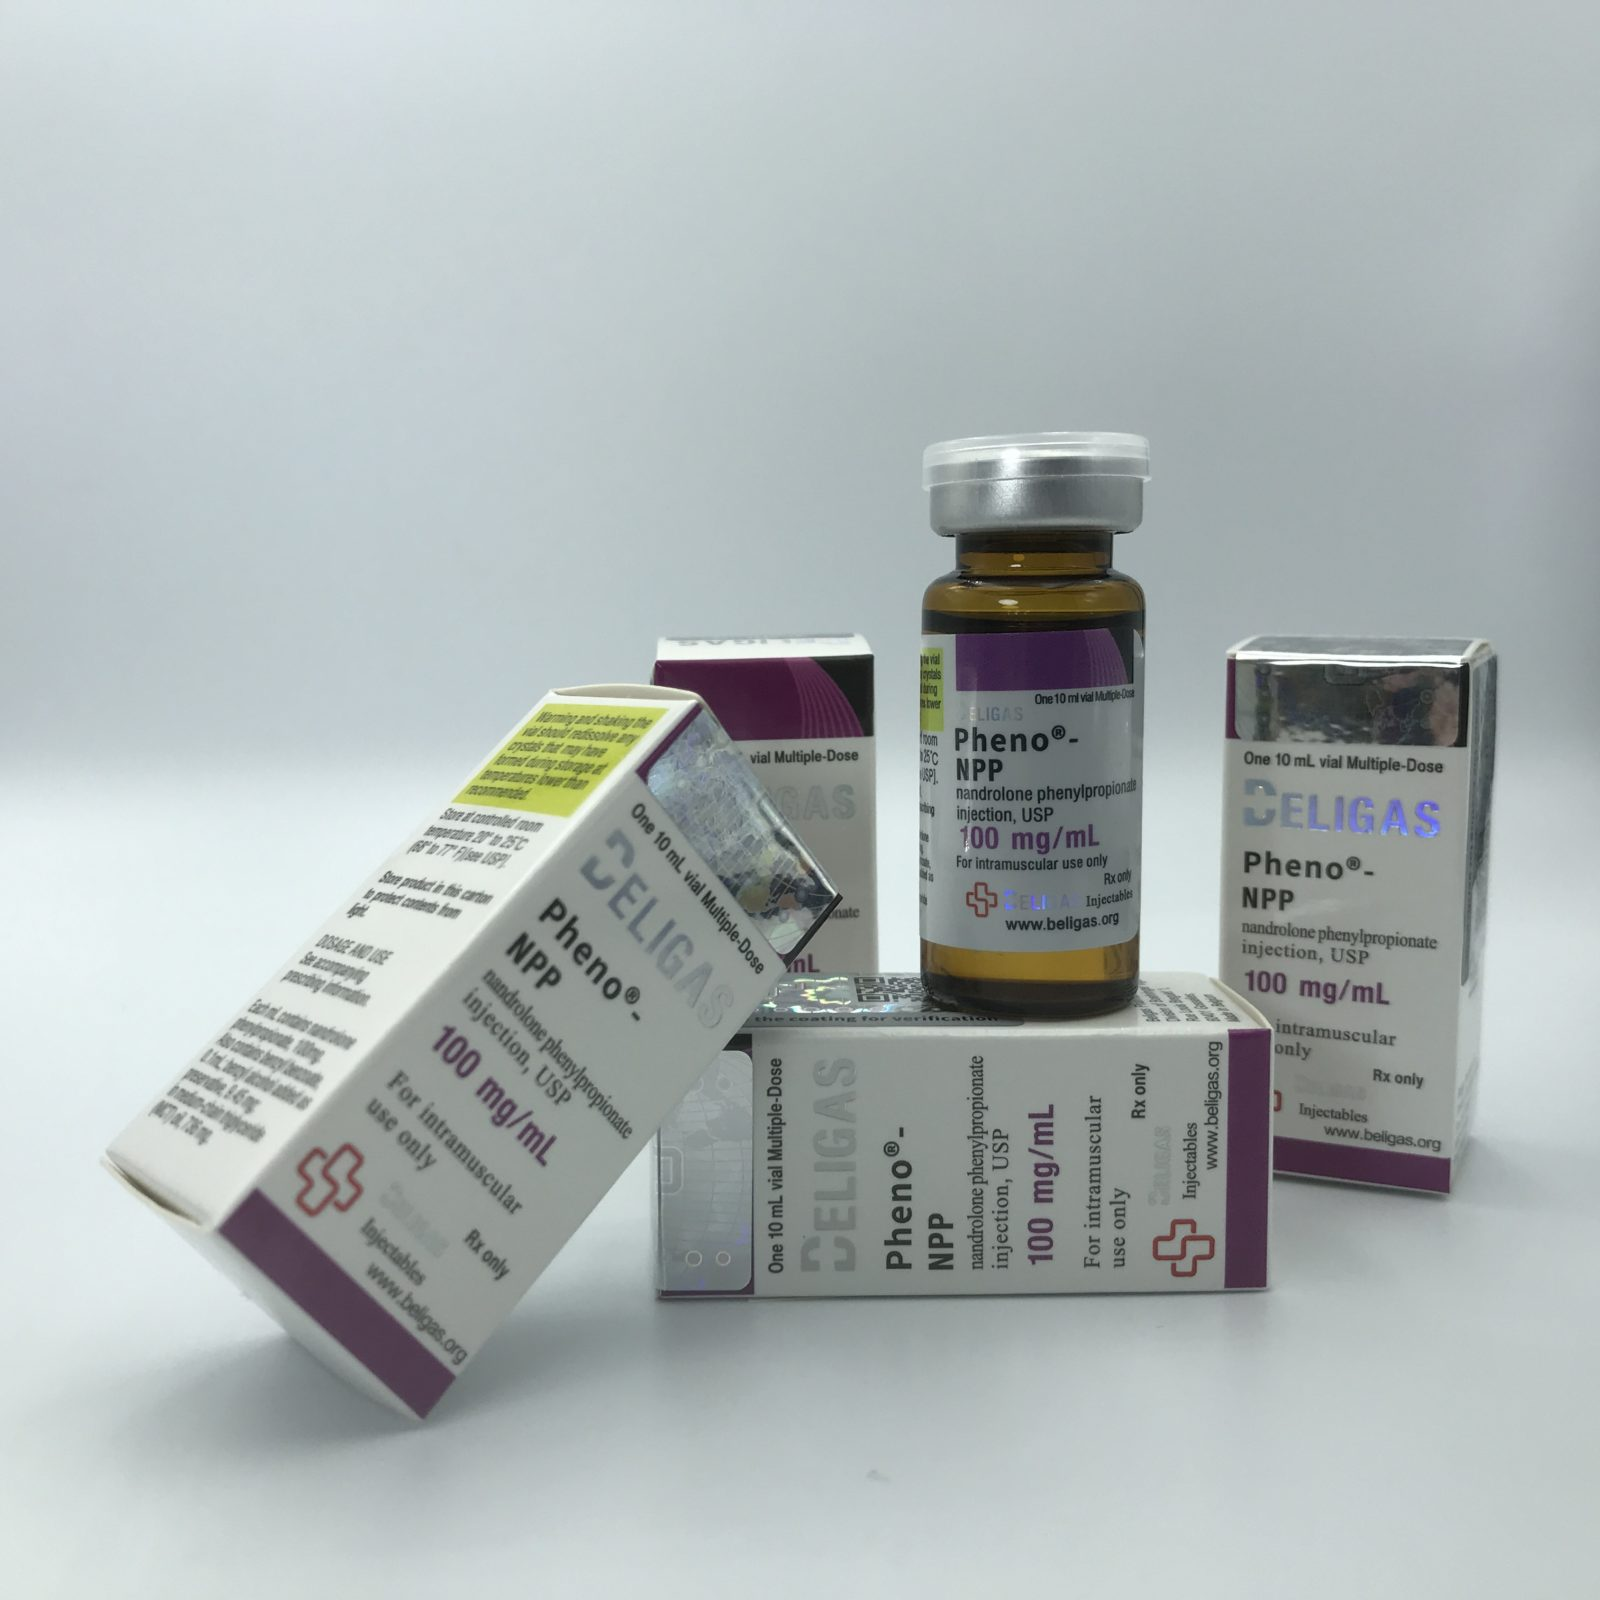 Nandrolone phenylpropionate description